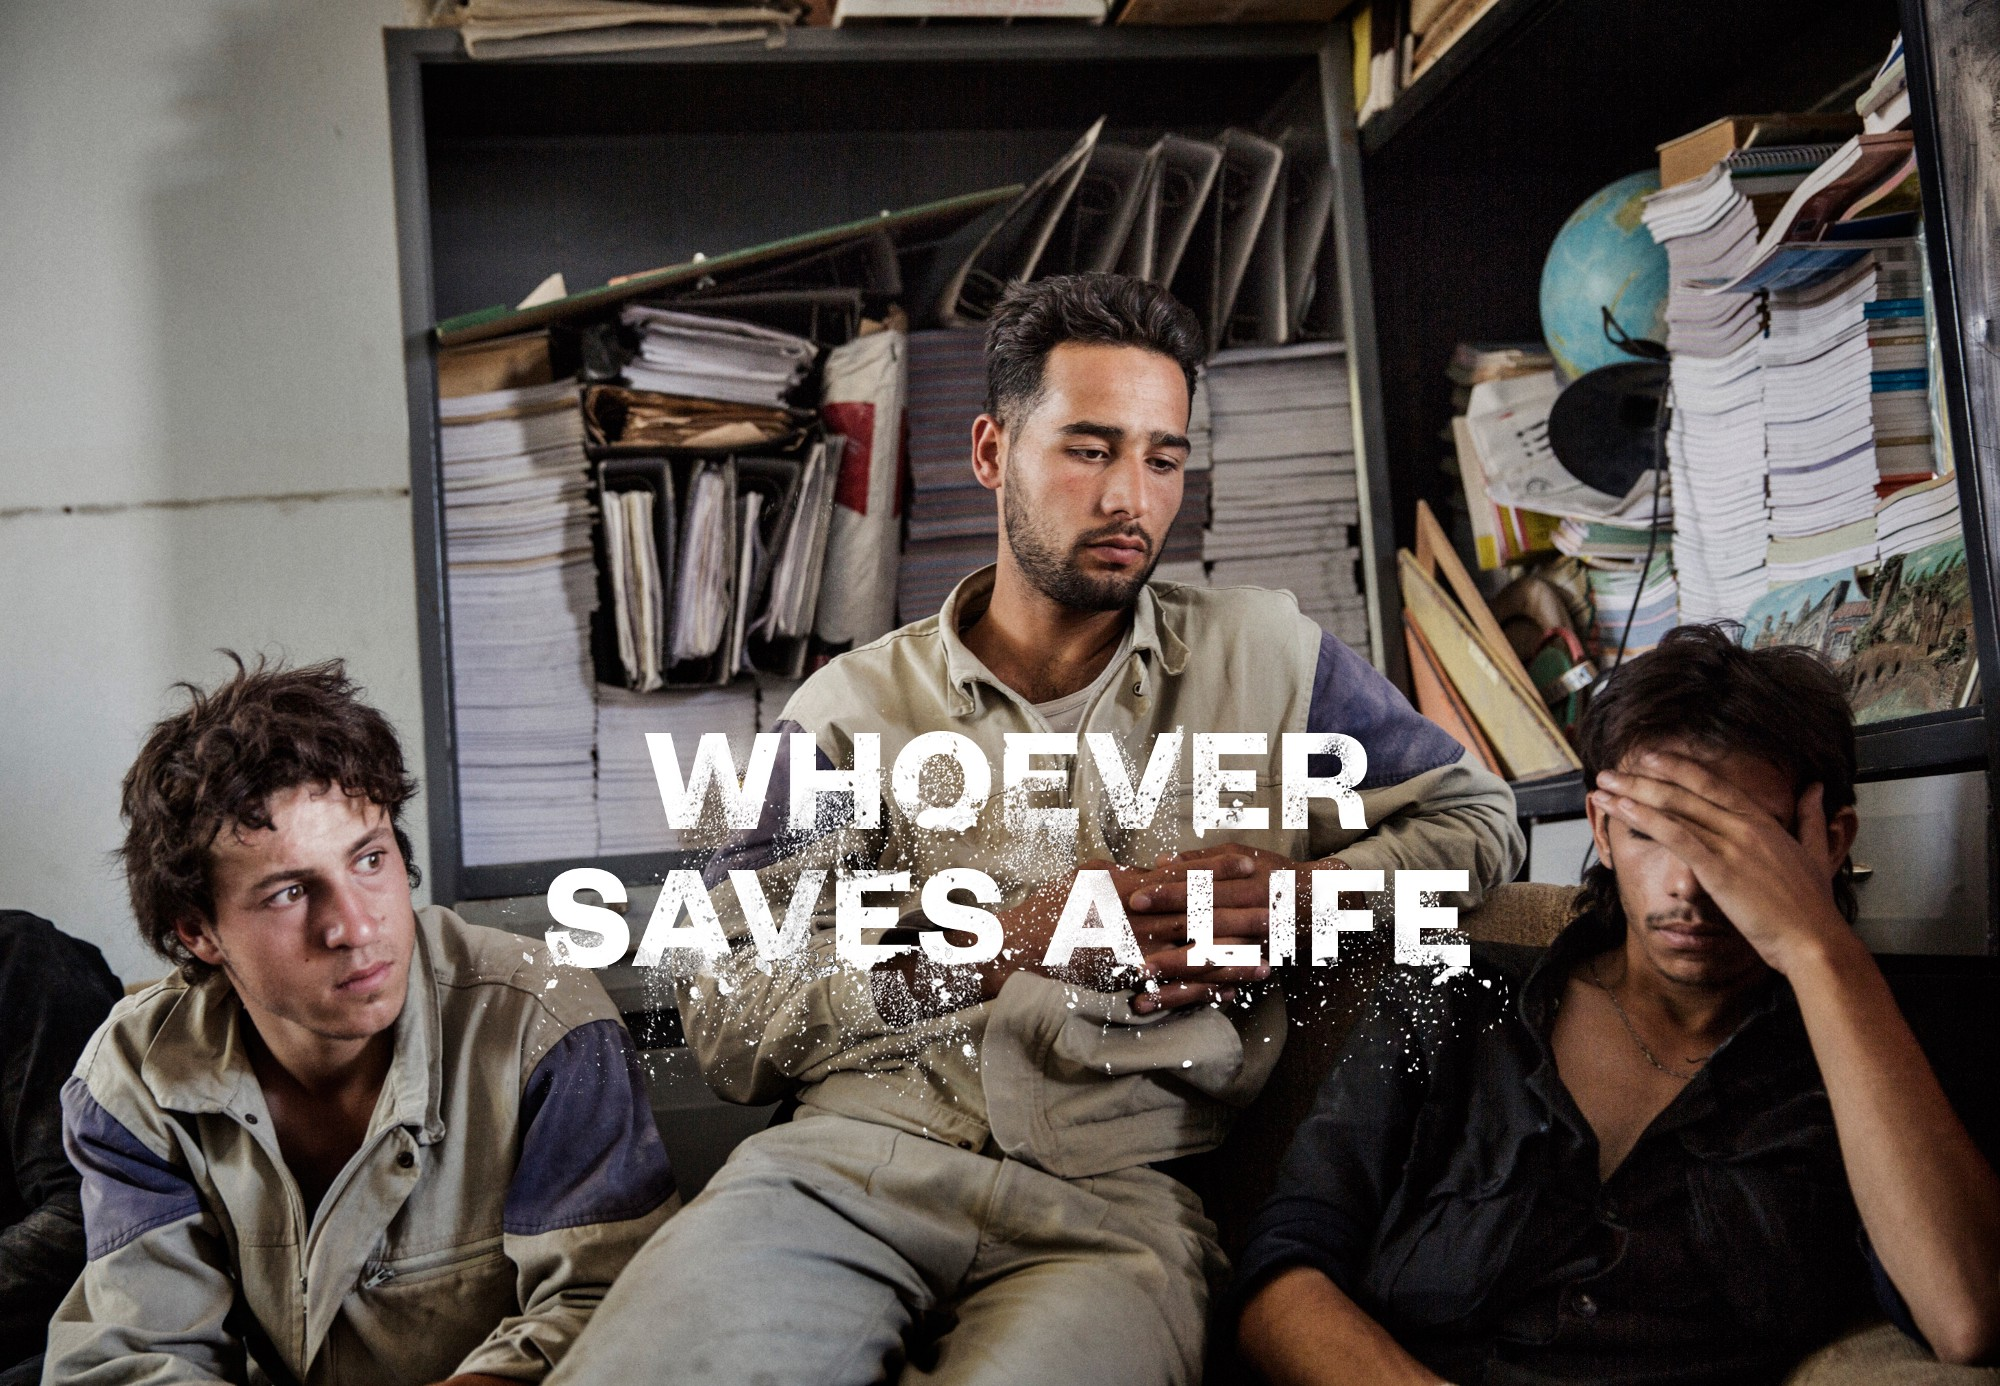 Whoever Saves A Life Matter Medium How To Build Whistle Responder Seven Days Inside The And Death World Of Syrias First Responders Last Hope For Civilians Caught In Chaos